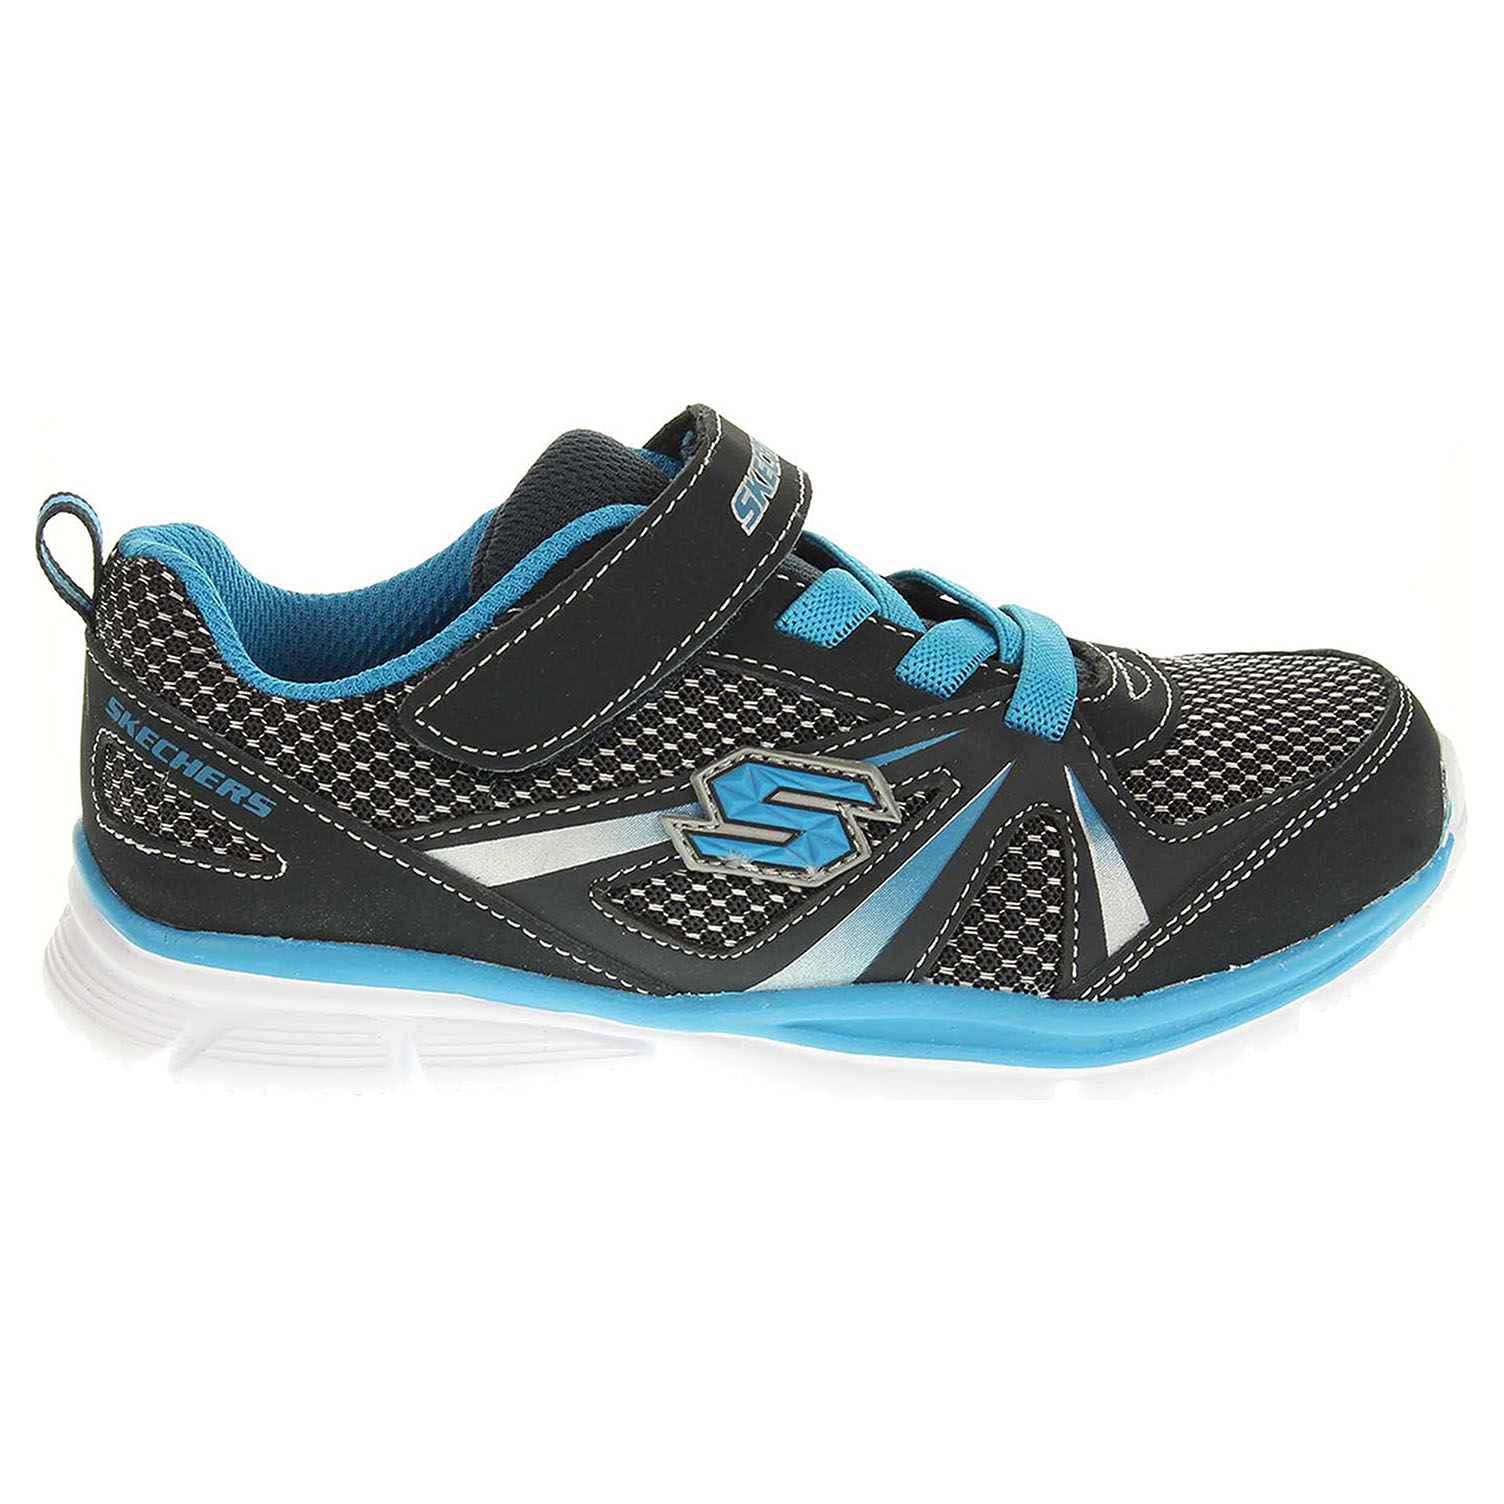 Skechers Drifterz navy-blue